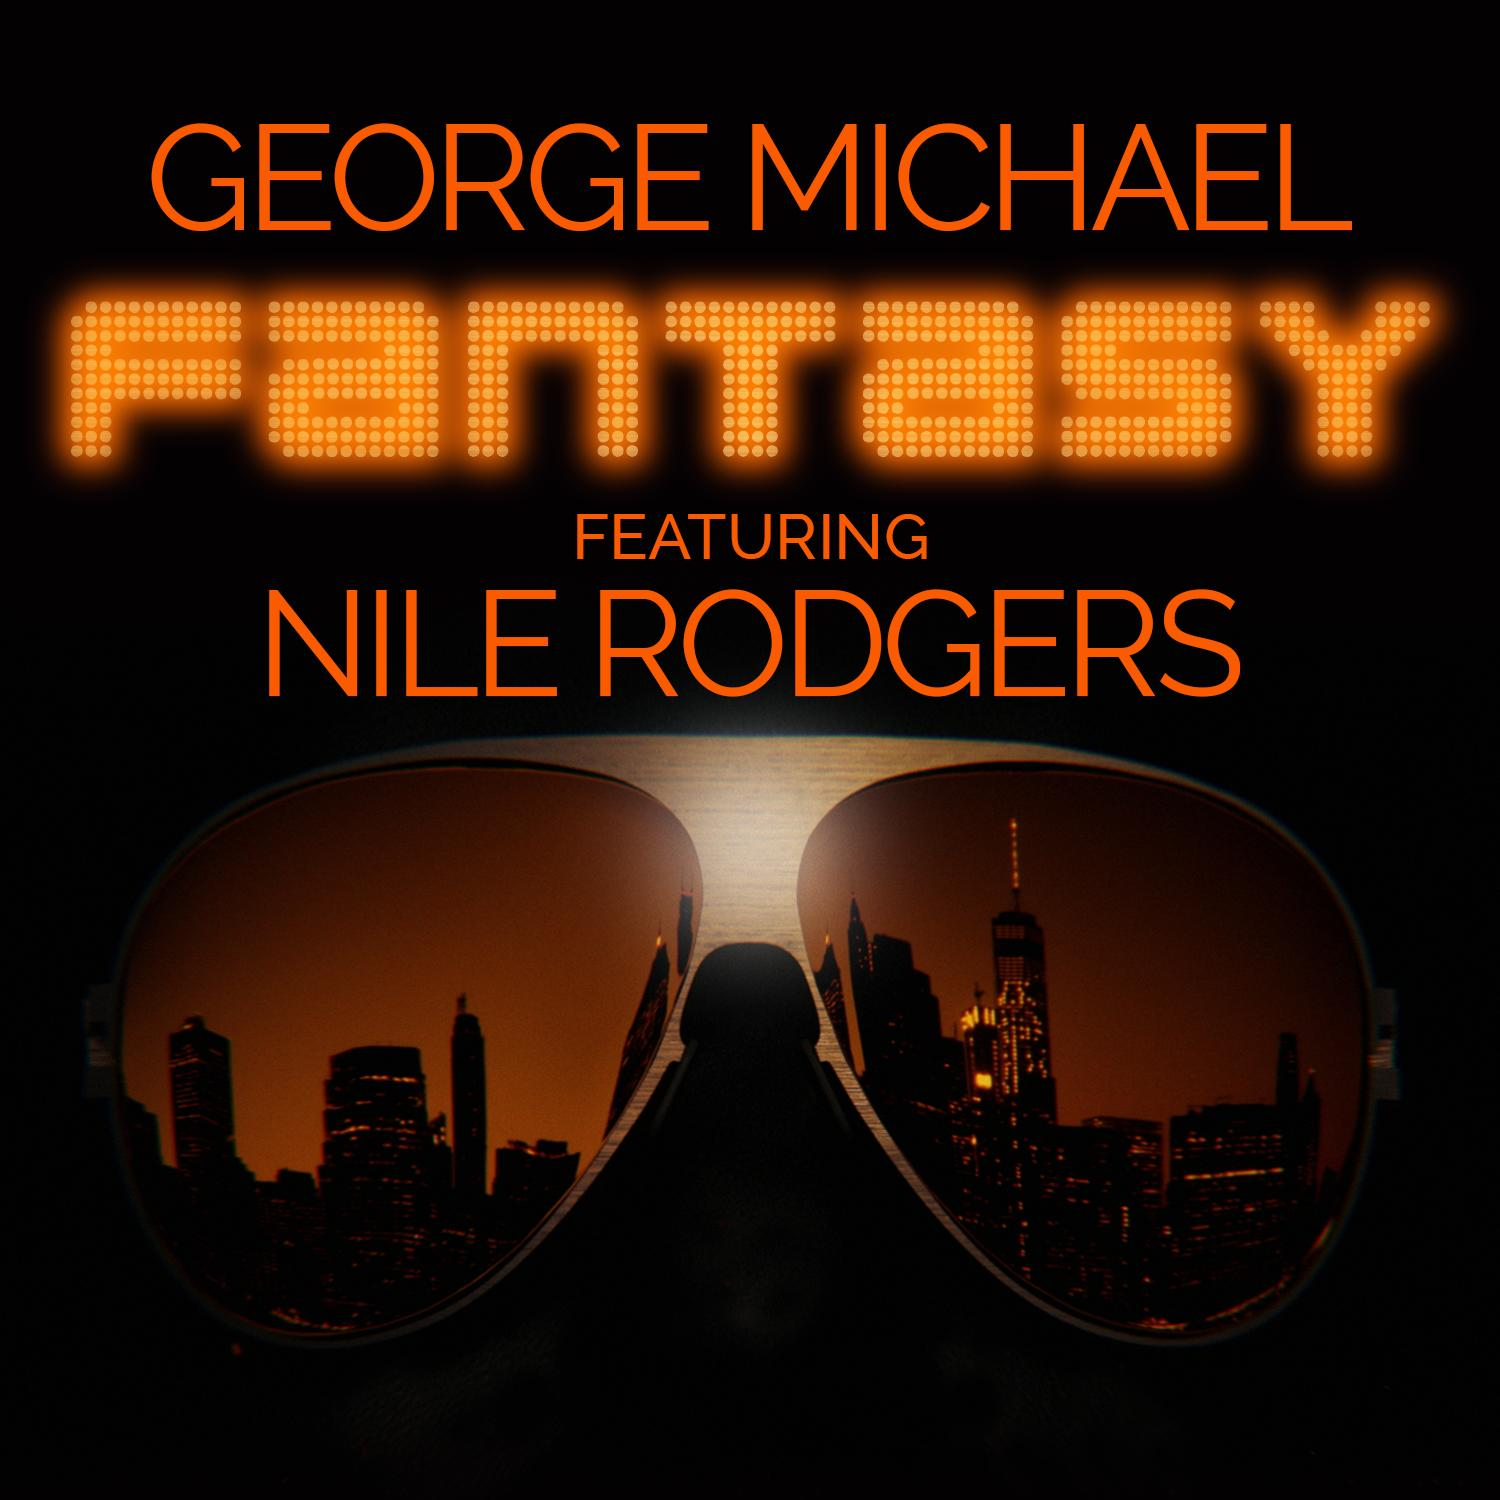 GEORGE MICHAEL FEAT. NILE RODGERS - FANTASY